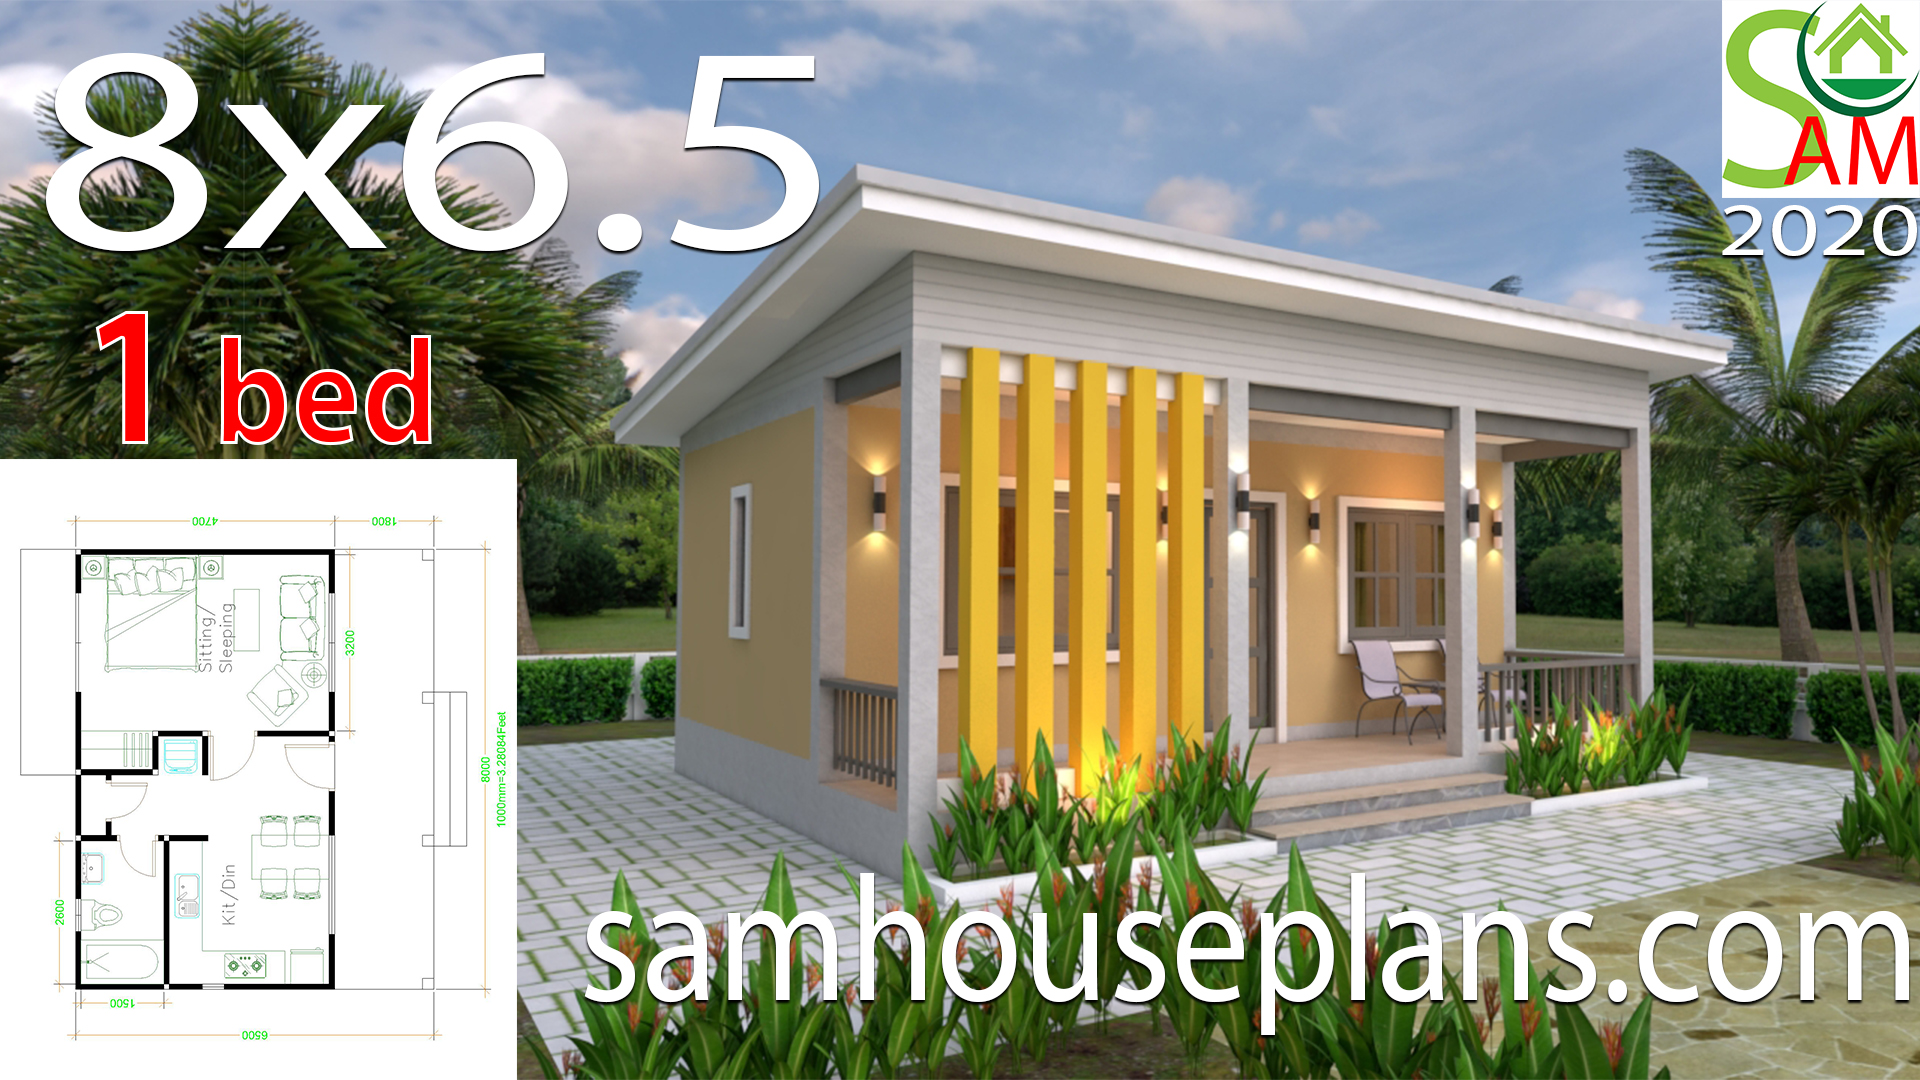 House Plans 8x6 5 With One Bedrooms Shed Roof Samhouseplans